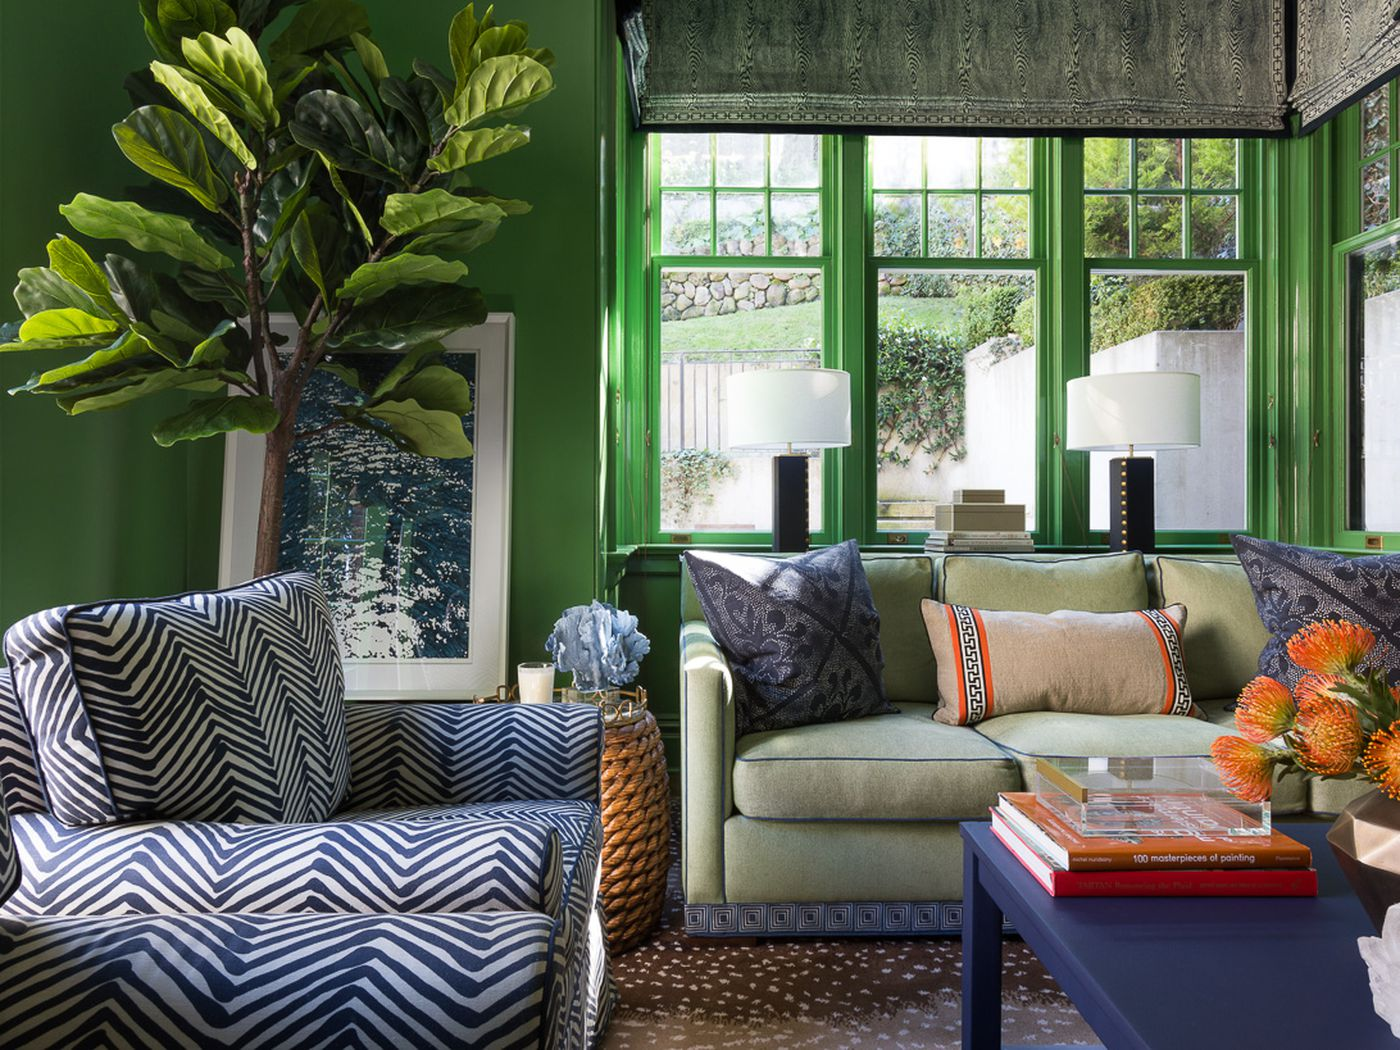 15 Bold Interior Paint Hues For Your Home